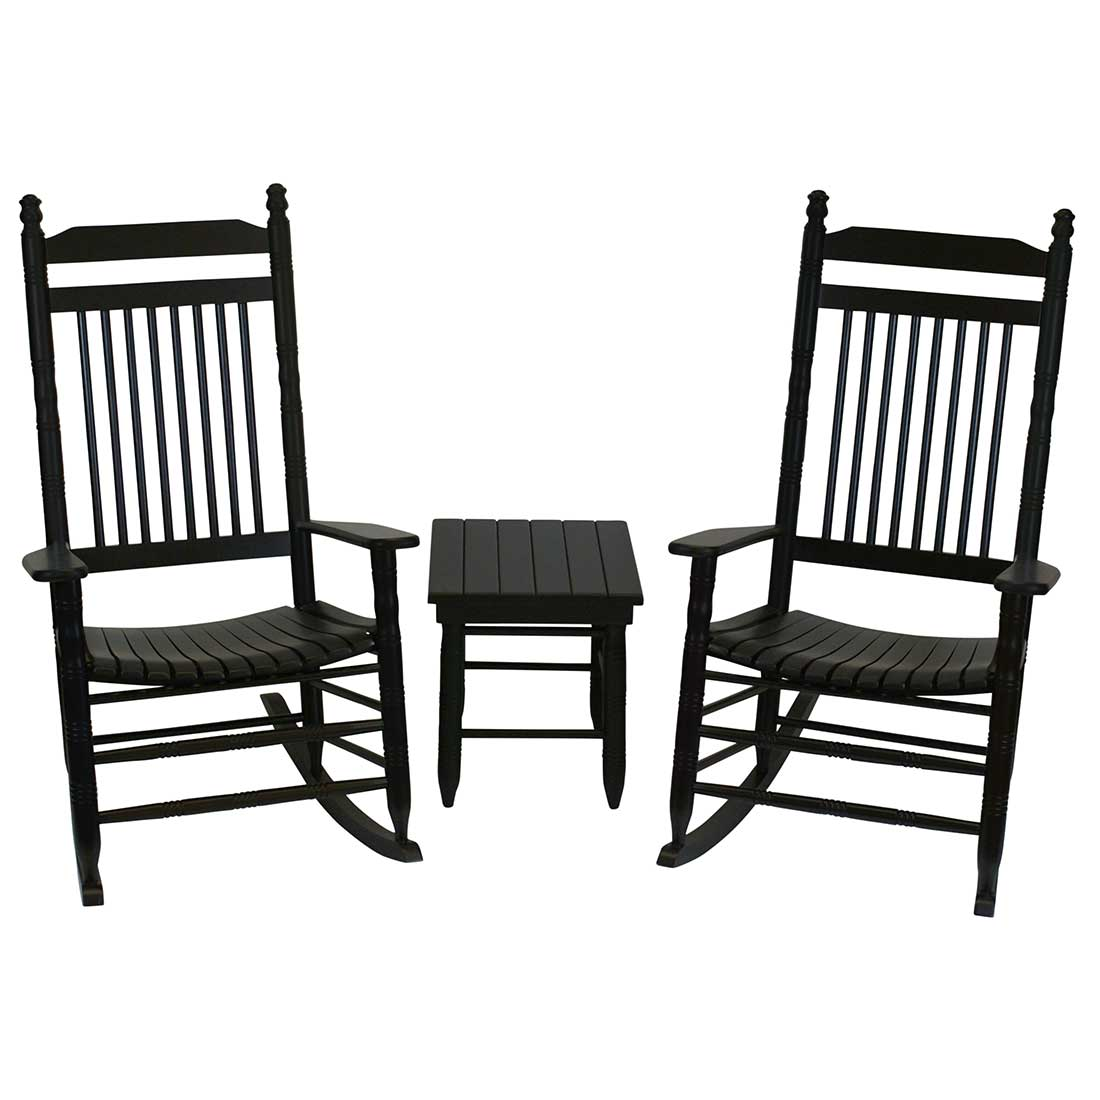 Fabulous 3 Piece Slat Rocker Set Forskolin Free Trial Chair Design Images Forskolin Free Trialorg